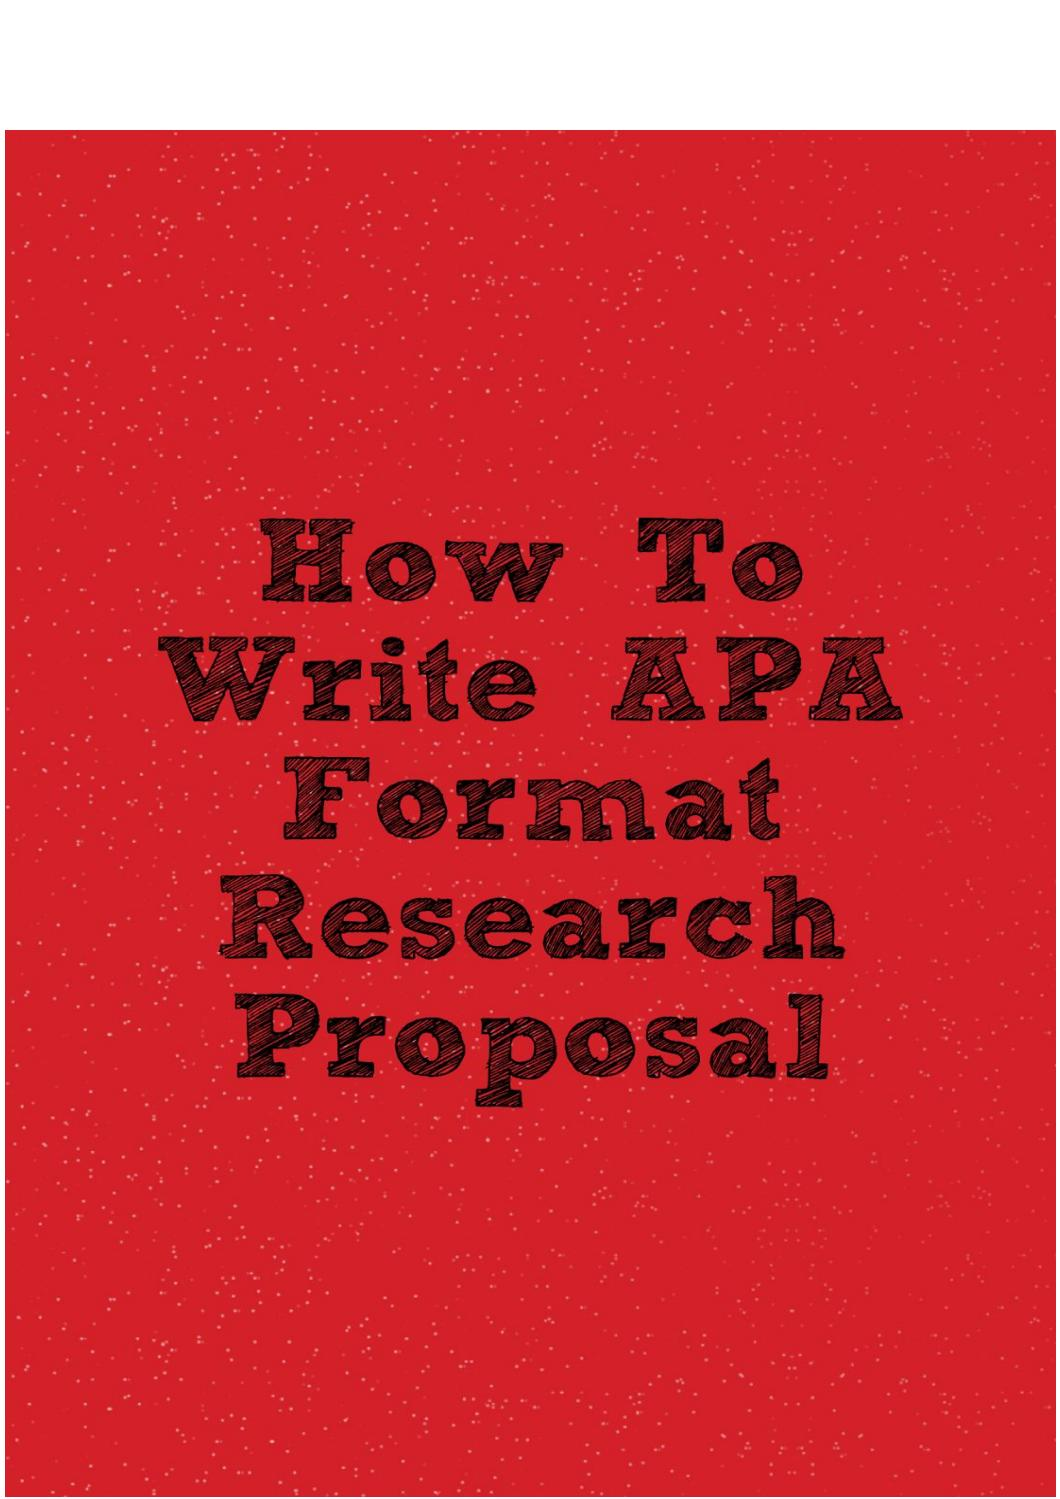 Apa format for research proposal writing cheap paper ghostwriter websites online